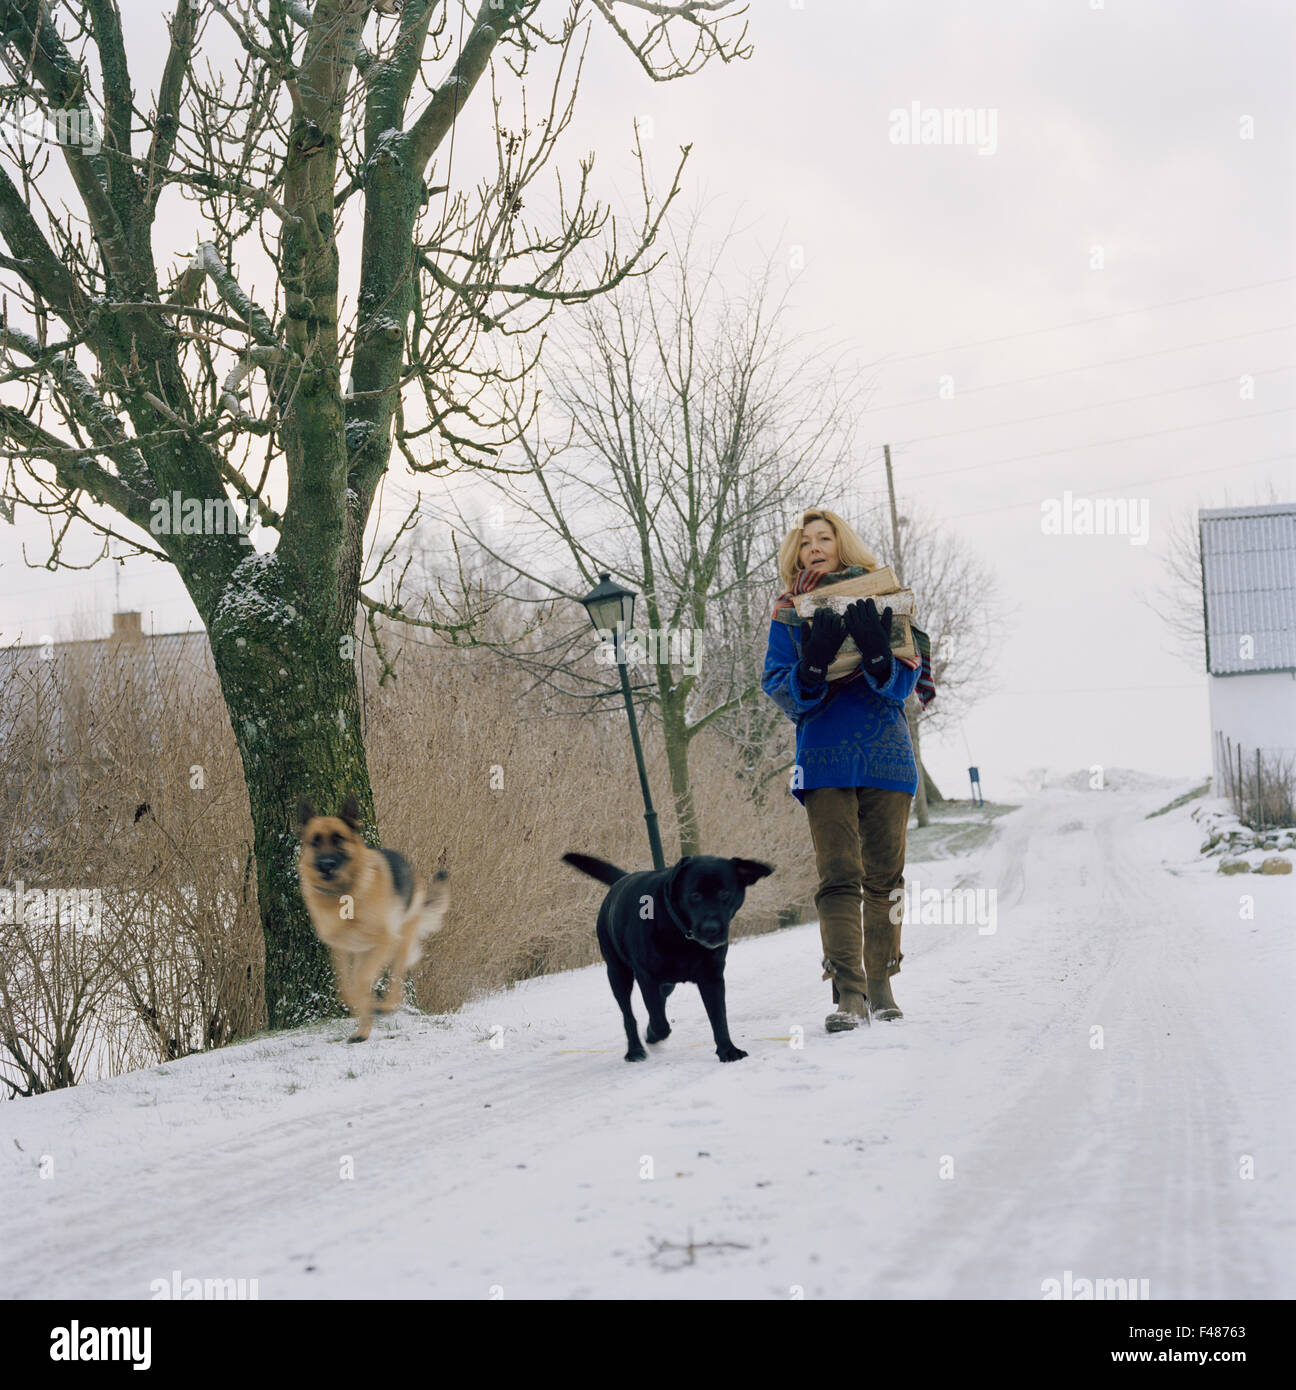 Scandinavian woman with dogs in the snow, Sweden. Stock Photo